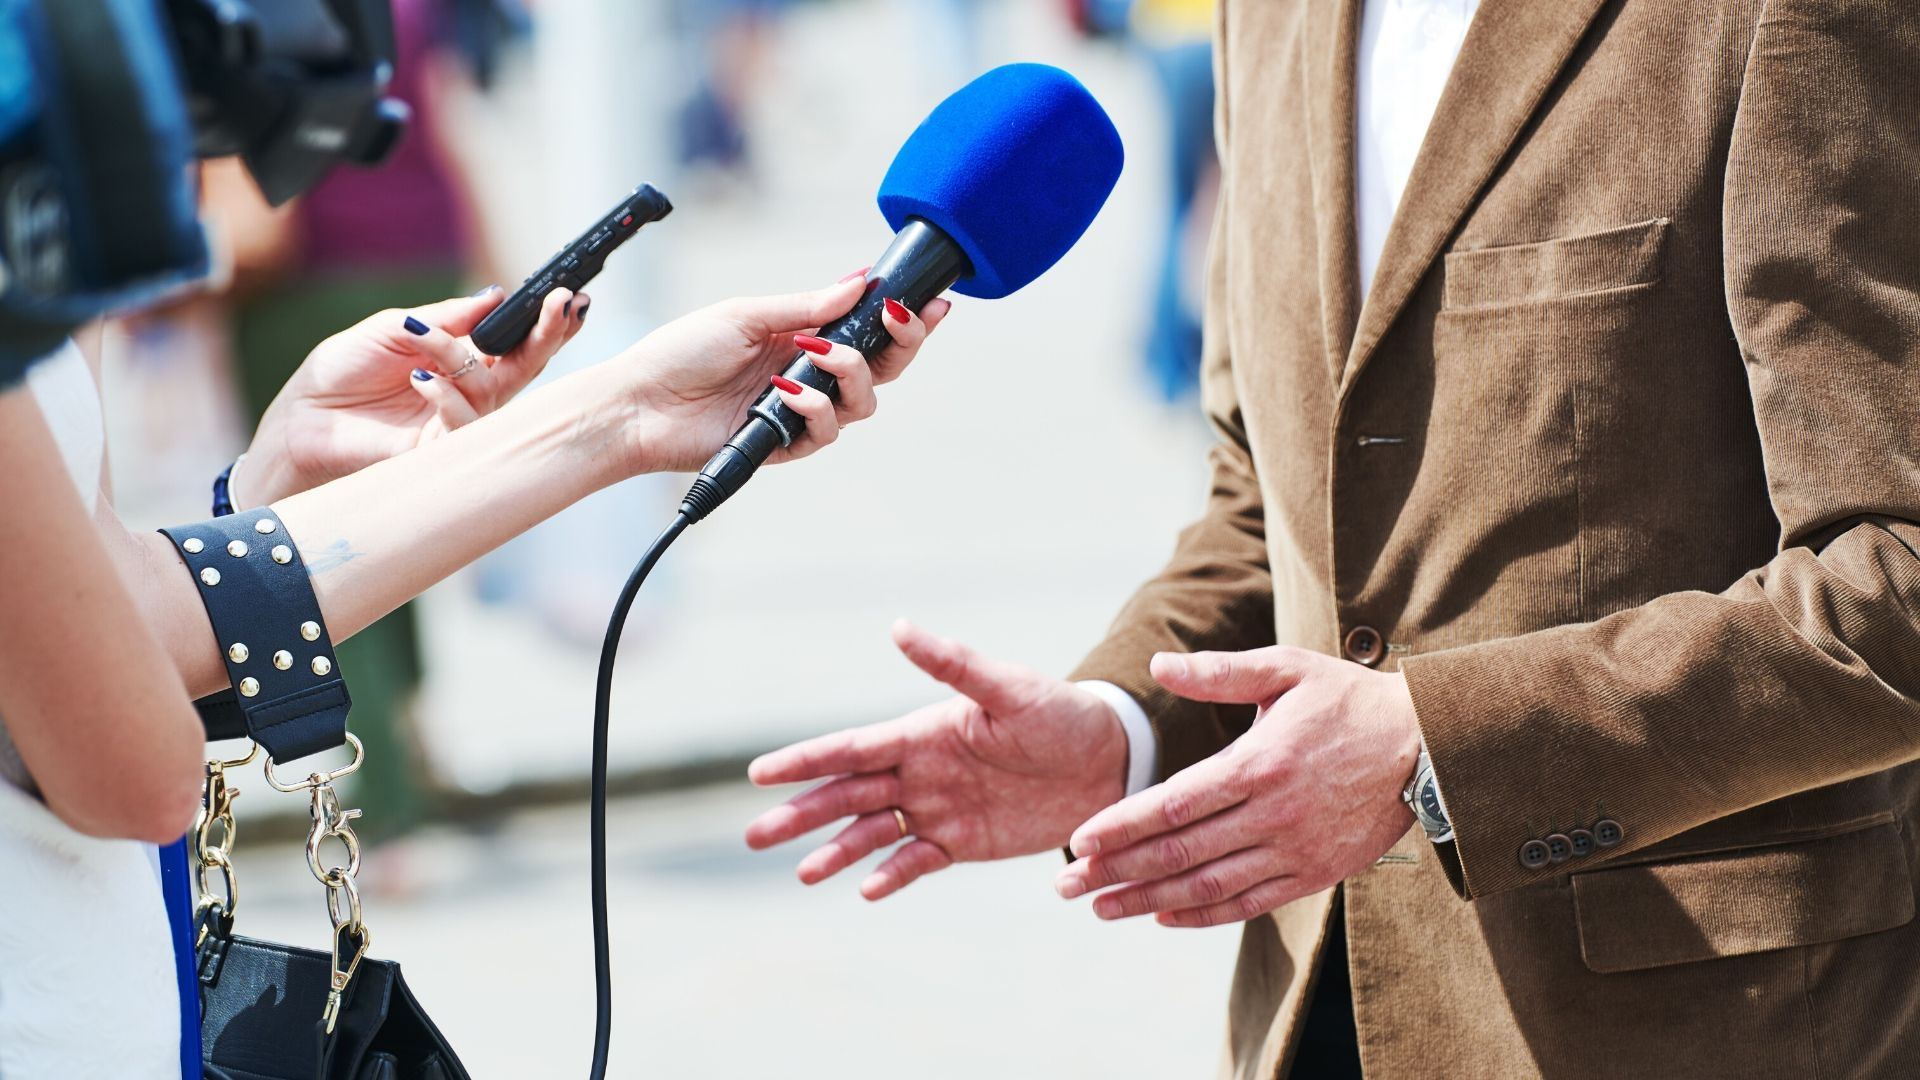 Filming an Interview: How to Make Good Interview Videos